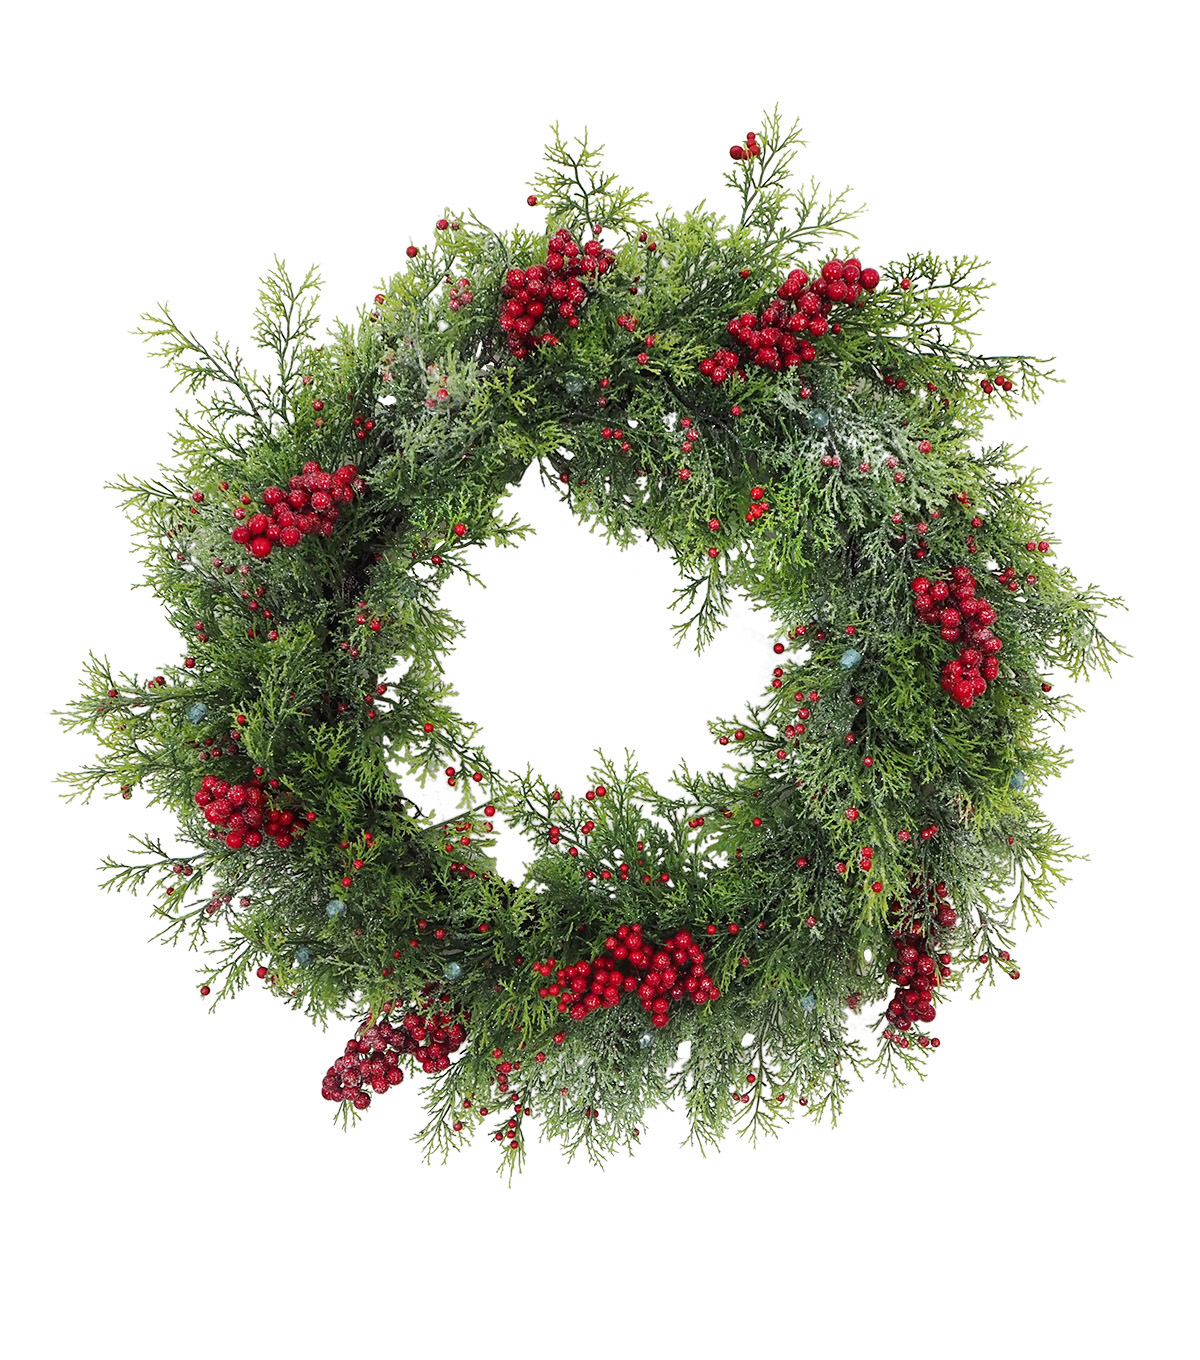 Blooming Holiday Christmas Glisten Red Berry & Cyprus Wreath                      Blooming Holiday Christmas Glisten Red Berry & Cyprus Wreath by Blooming Holiday